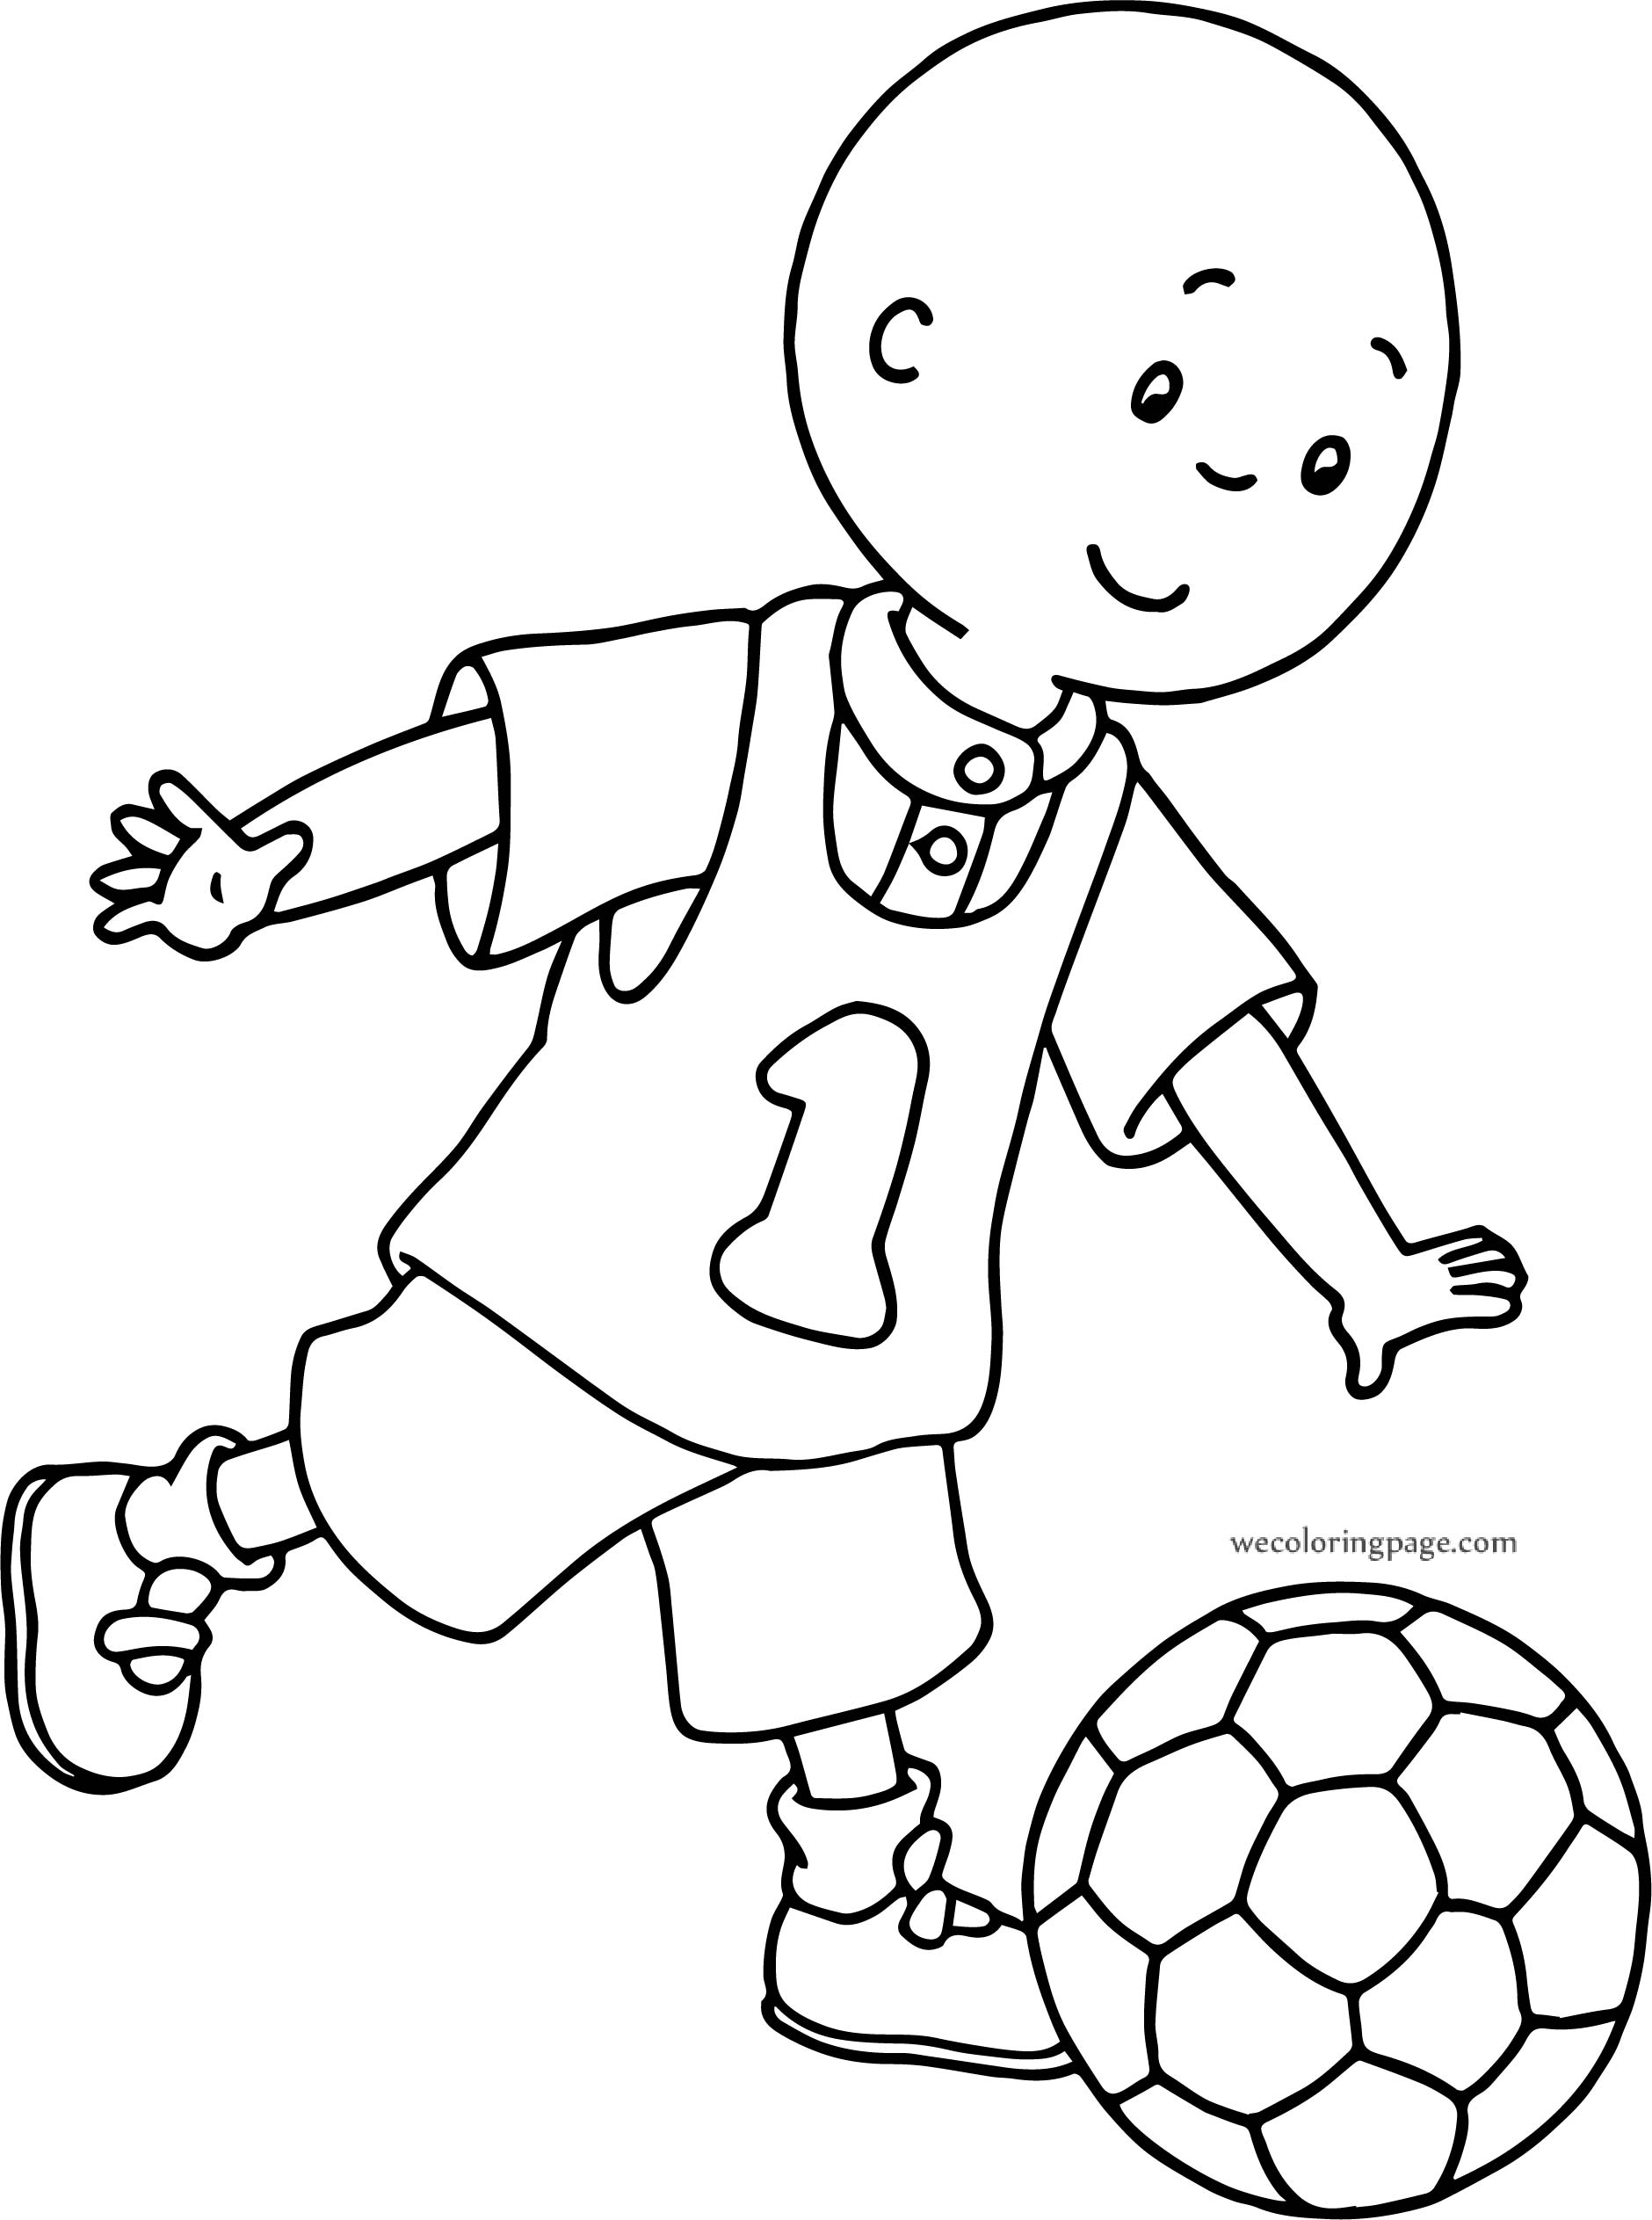 Caillou Playing Ball Coloring Page